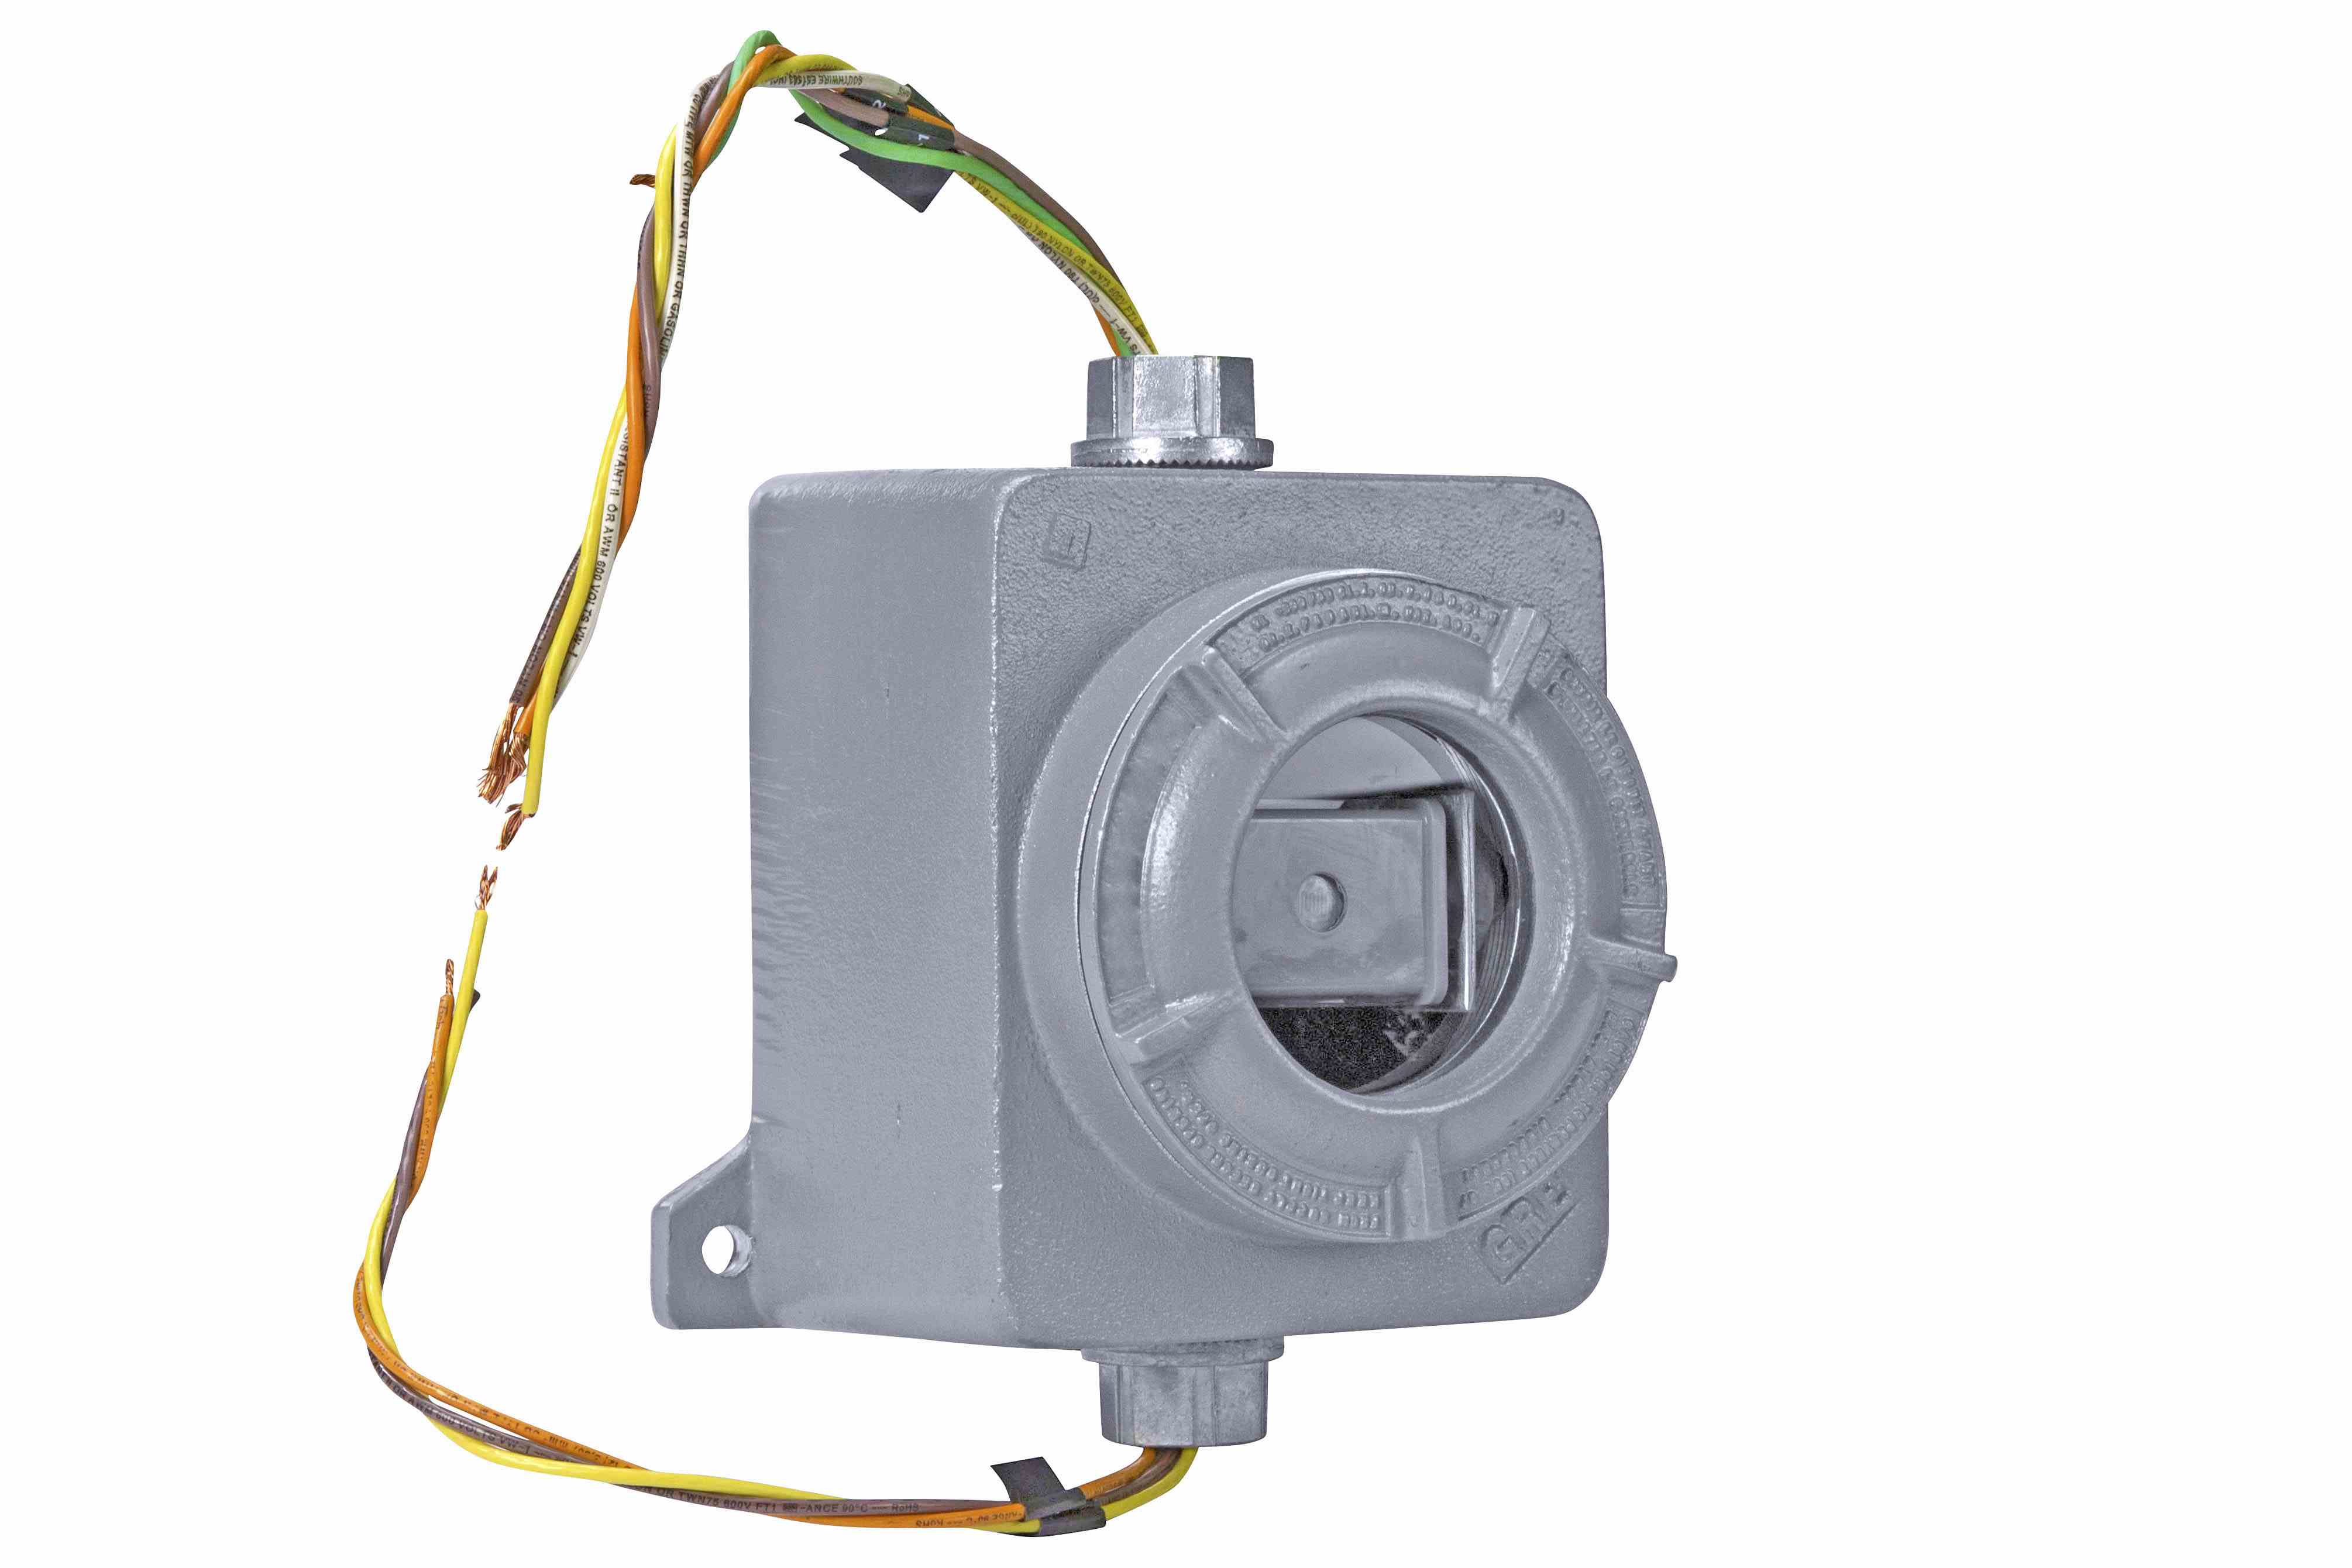 Explosion Proof Photocell